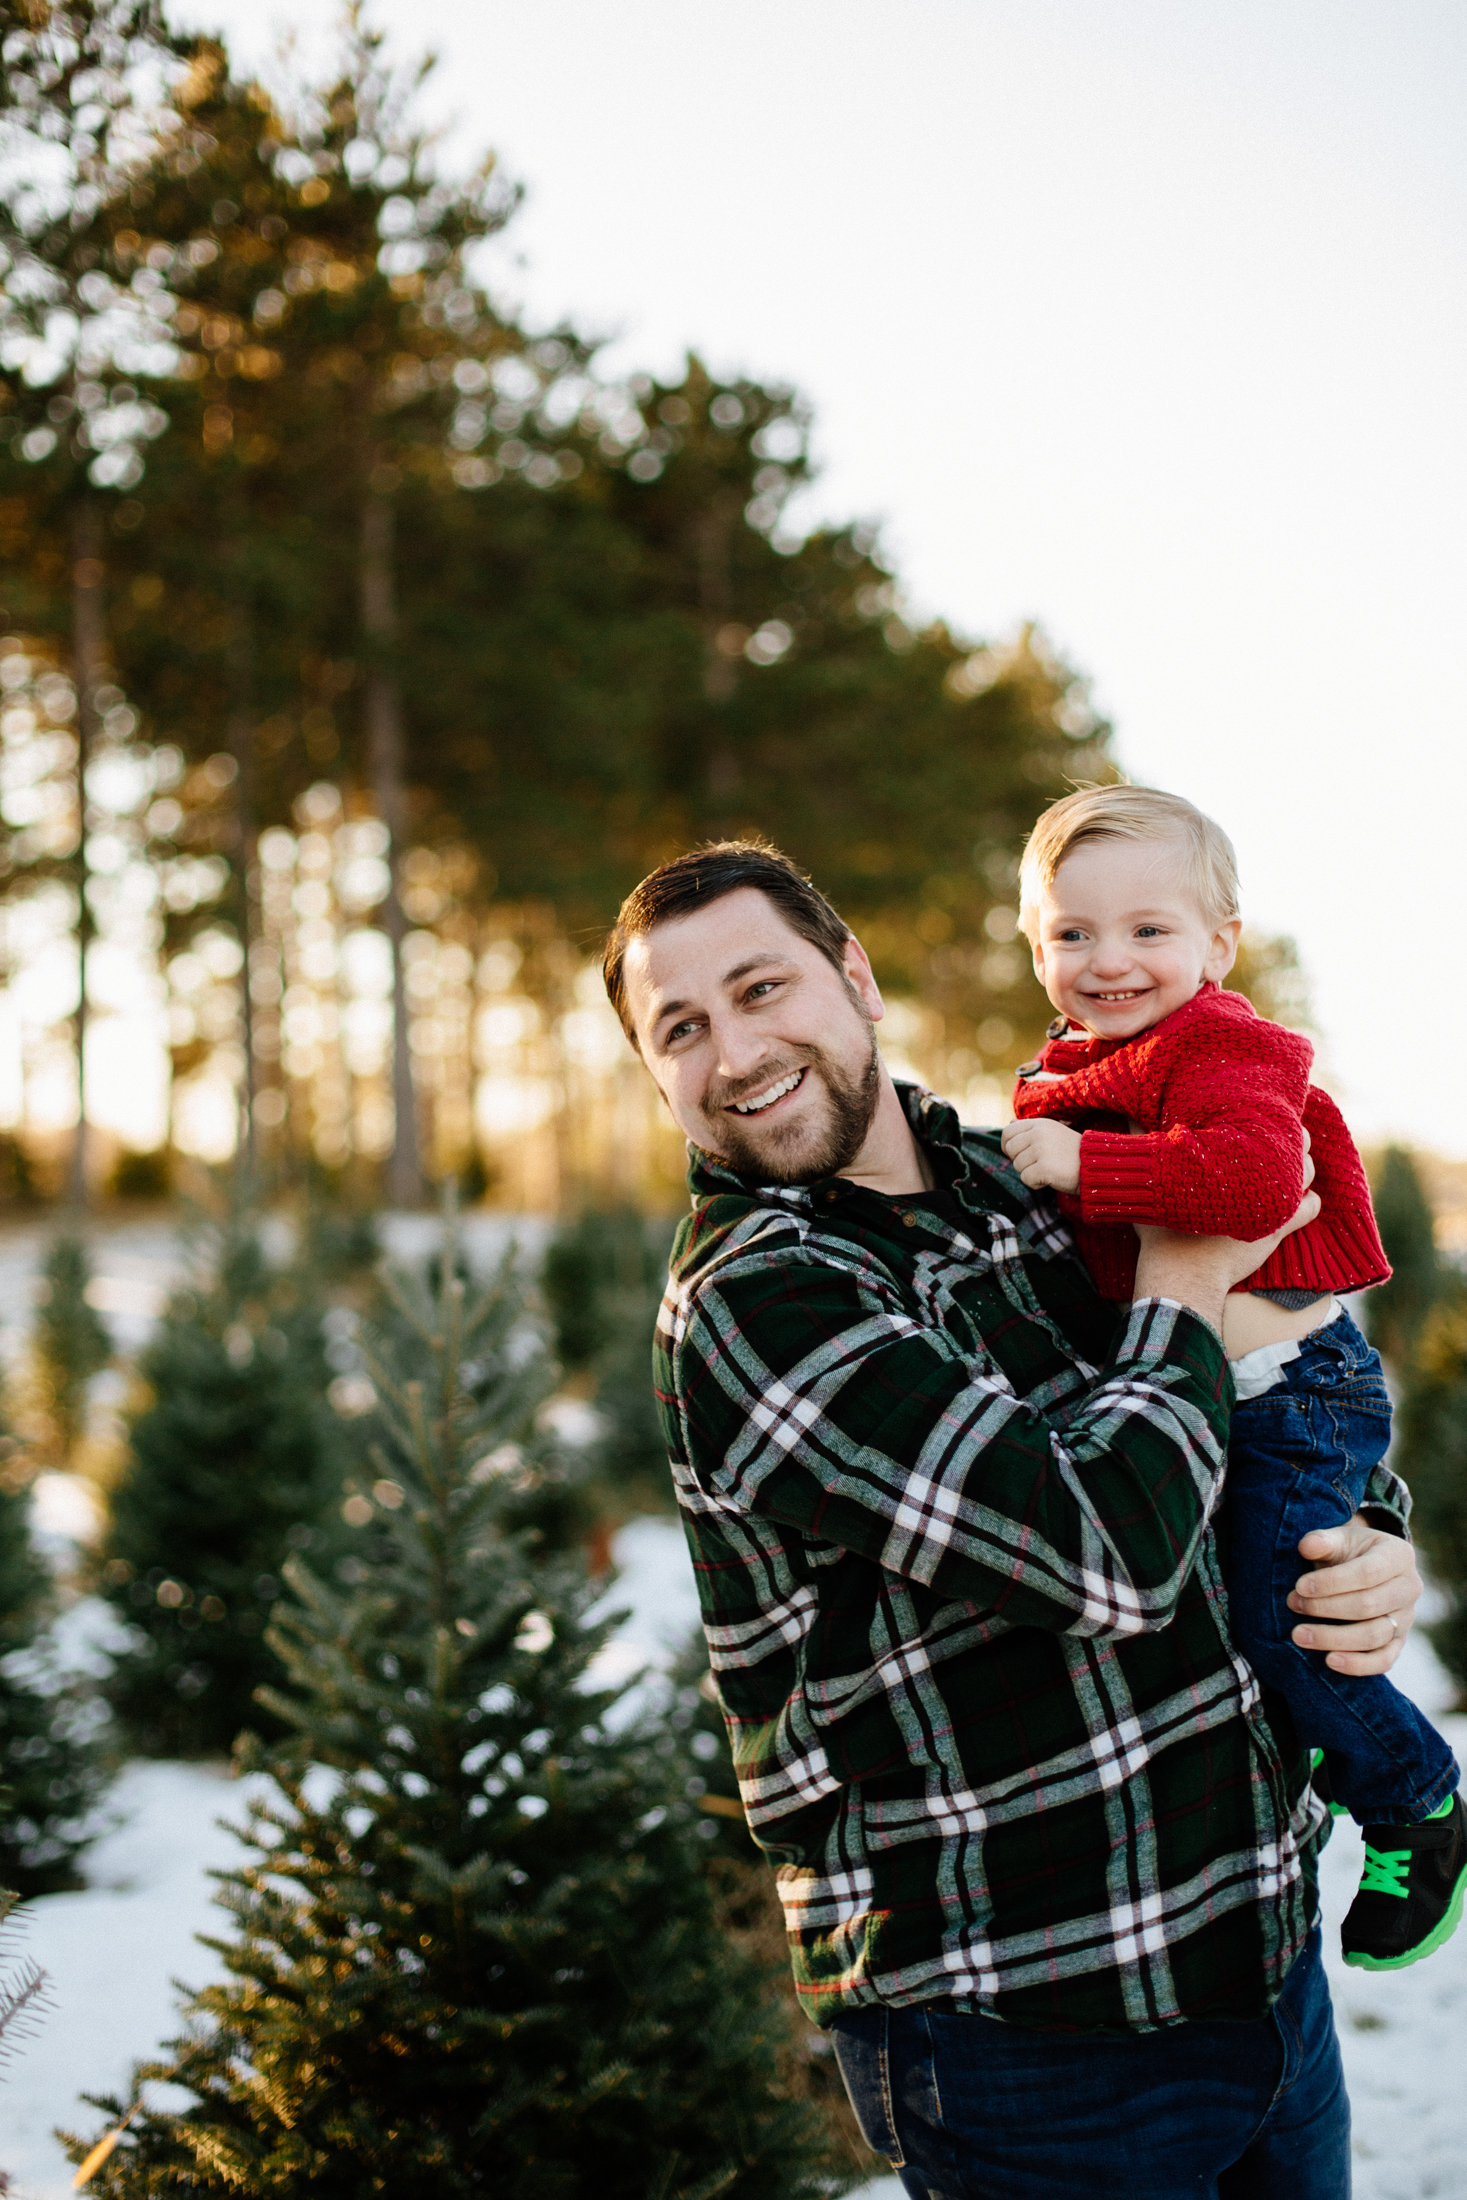 Jen_Montgomery_Photography_Arens_Holiday_Family_FB-7.jpg